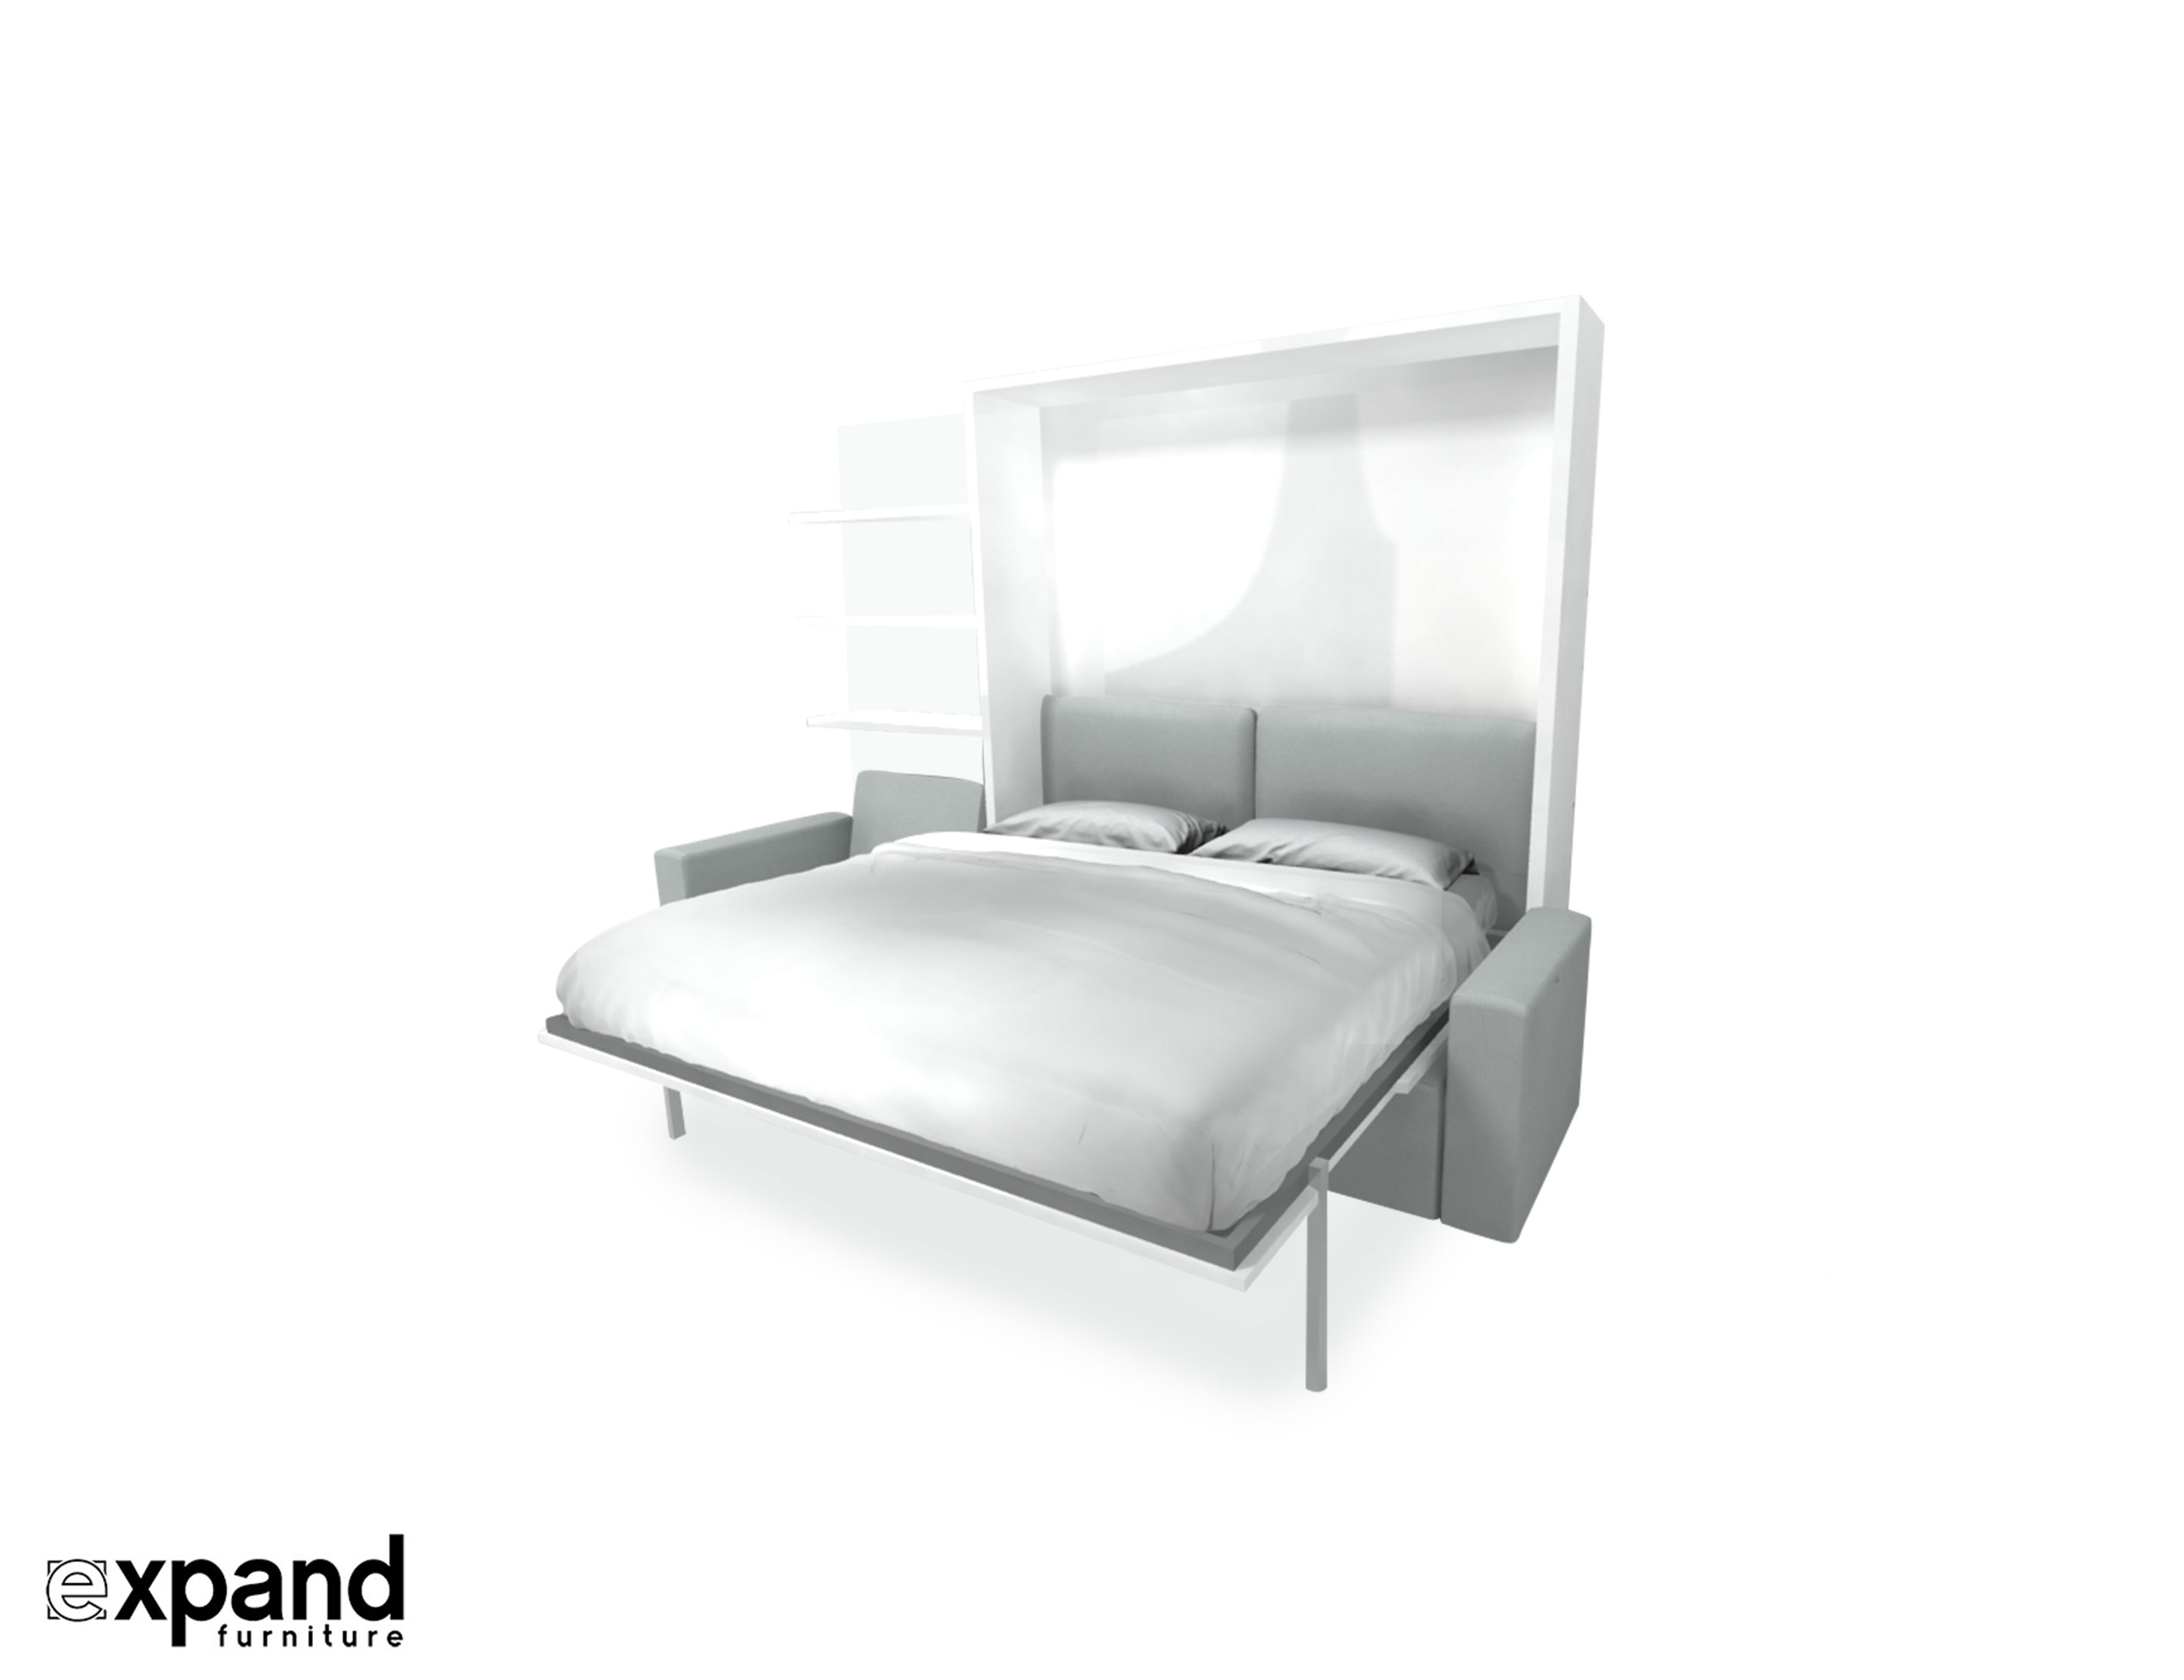 King Size Wall Bed With